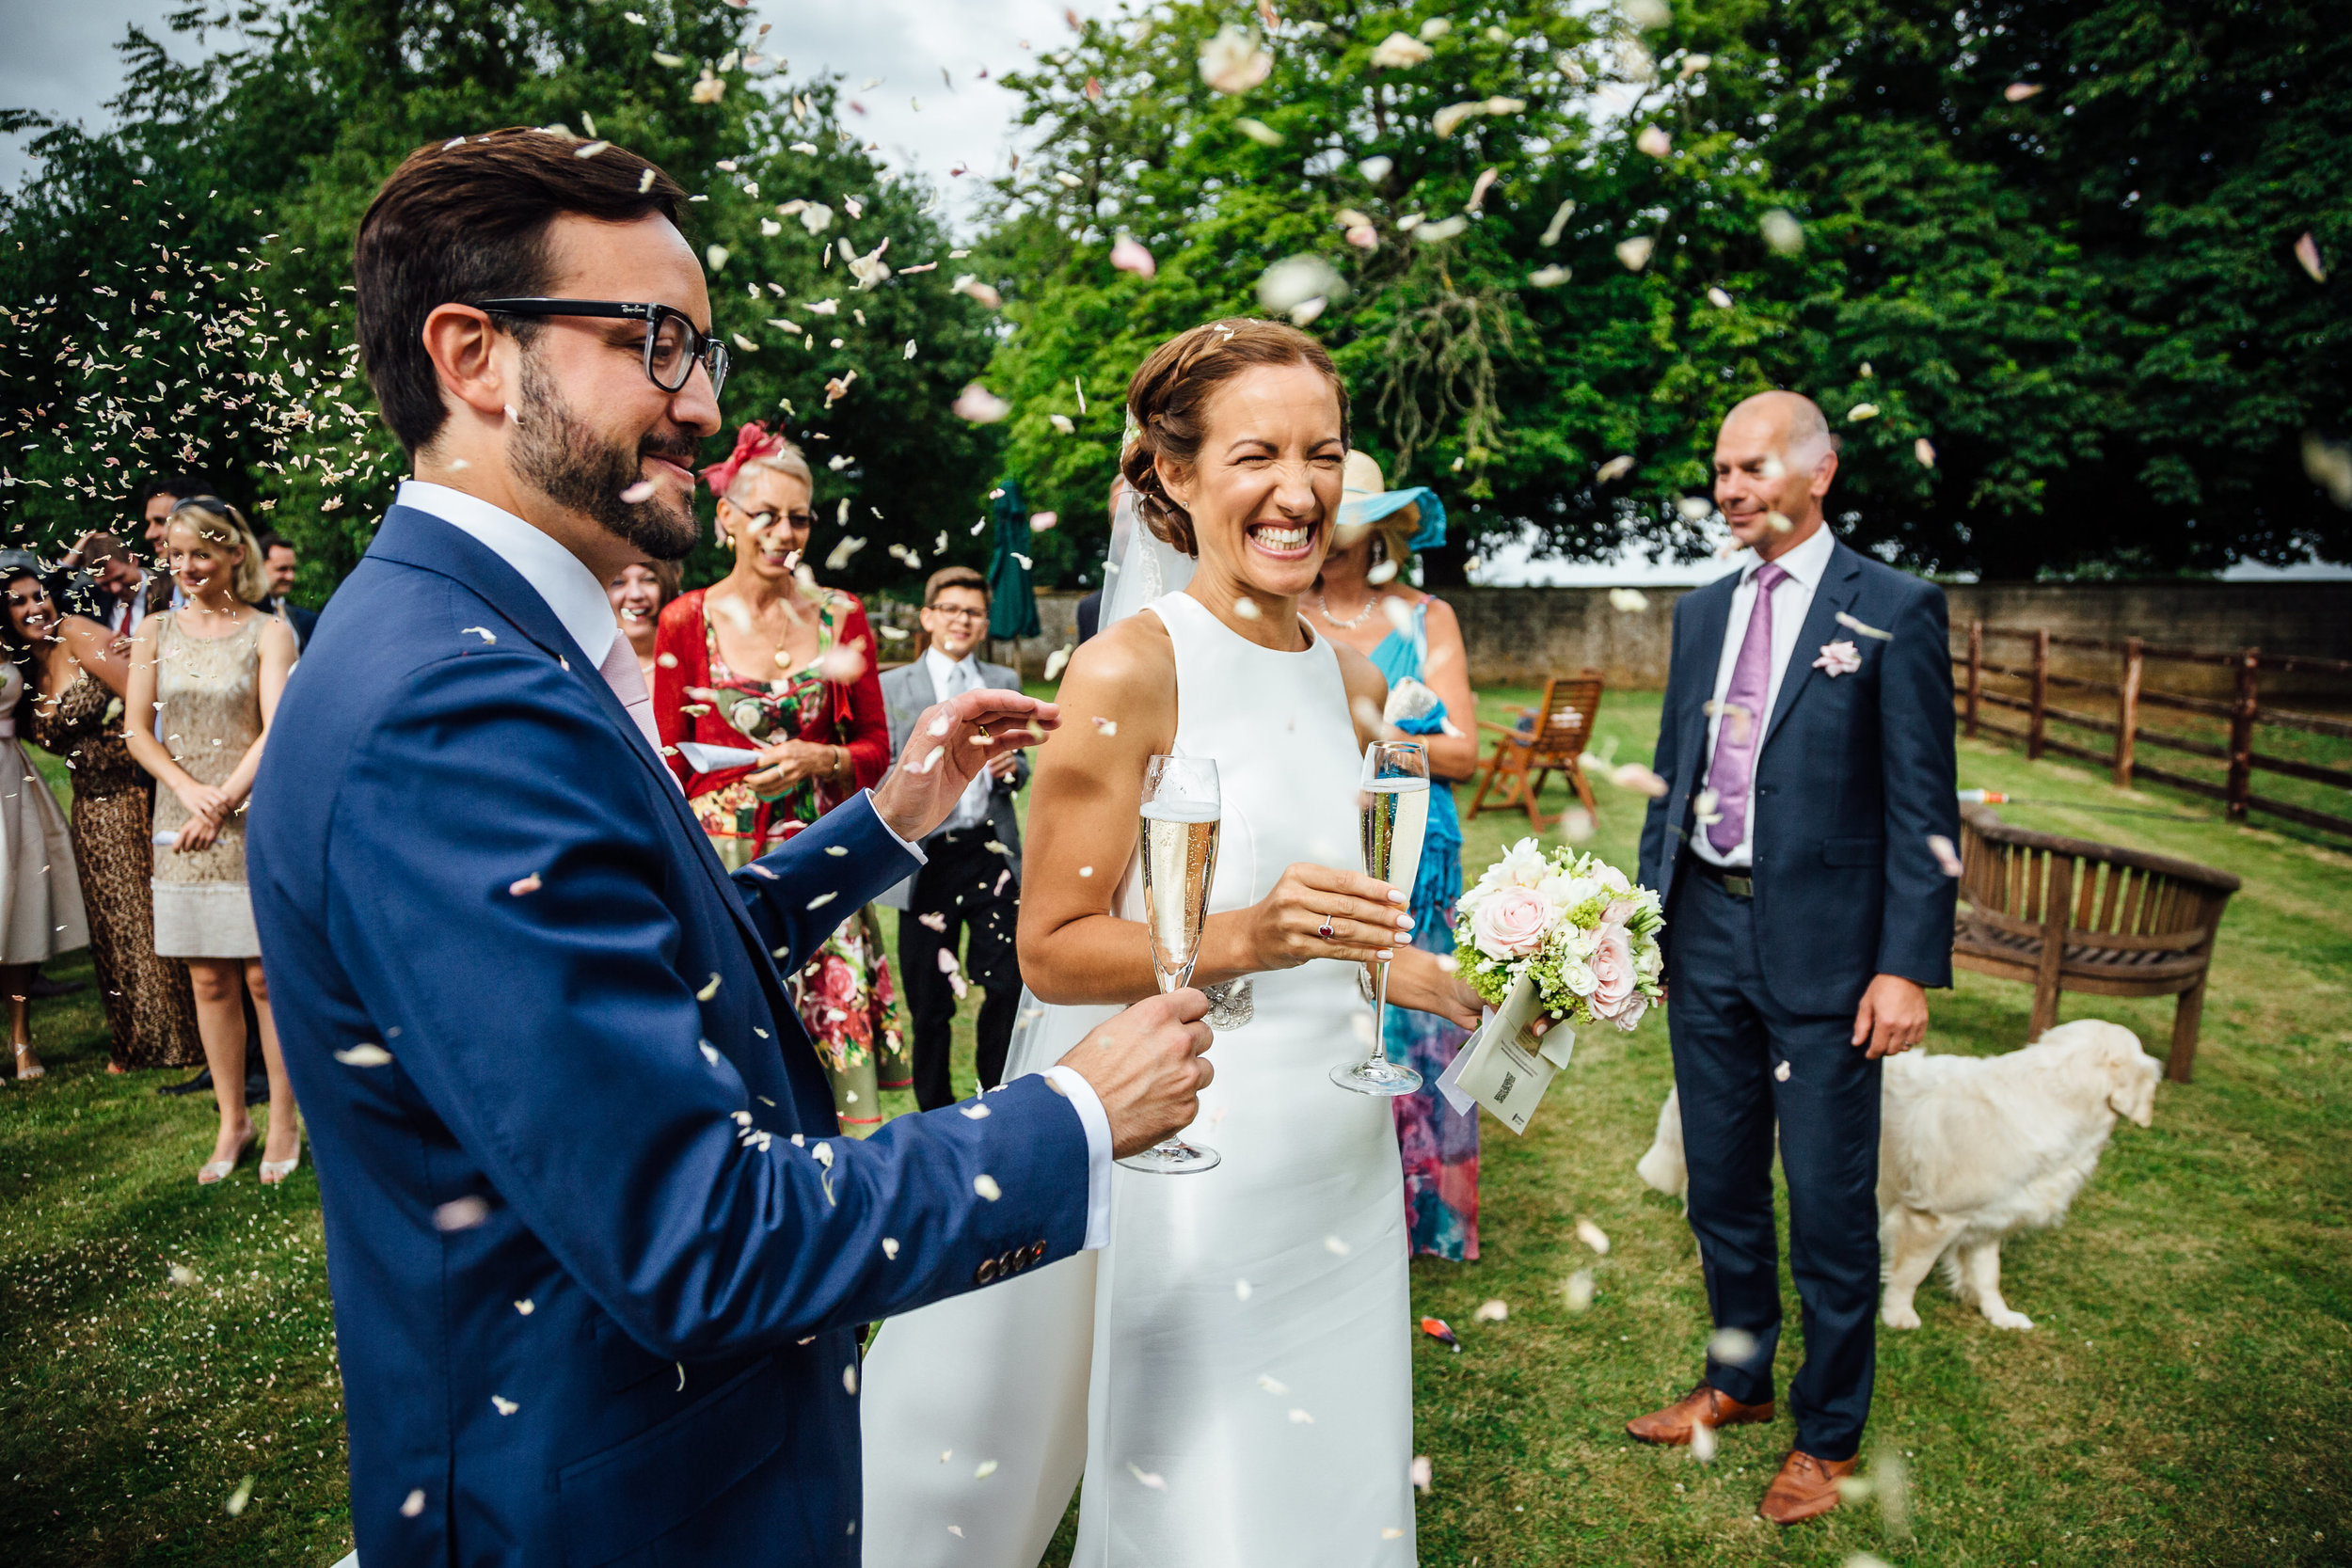 confetti-2015-natural-relaxed-fun-documentary-wedding-photography-photographer-Derby-Nottingham-Derbyshire-Nottinghamshire-Leicestershire-Lincolnshire-East-Midlands-11.jpg